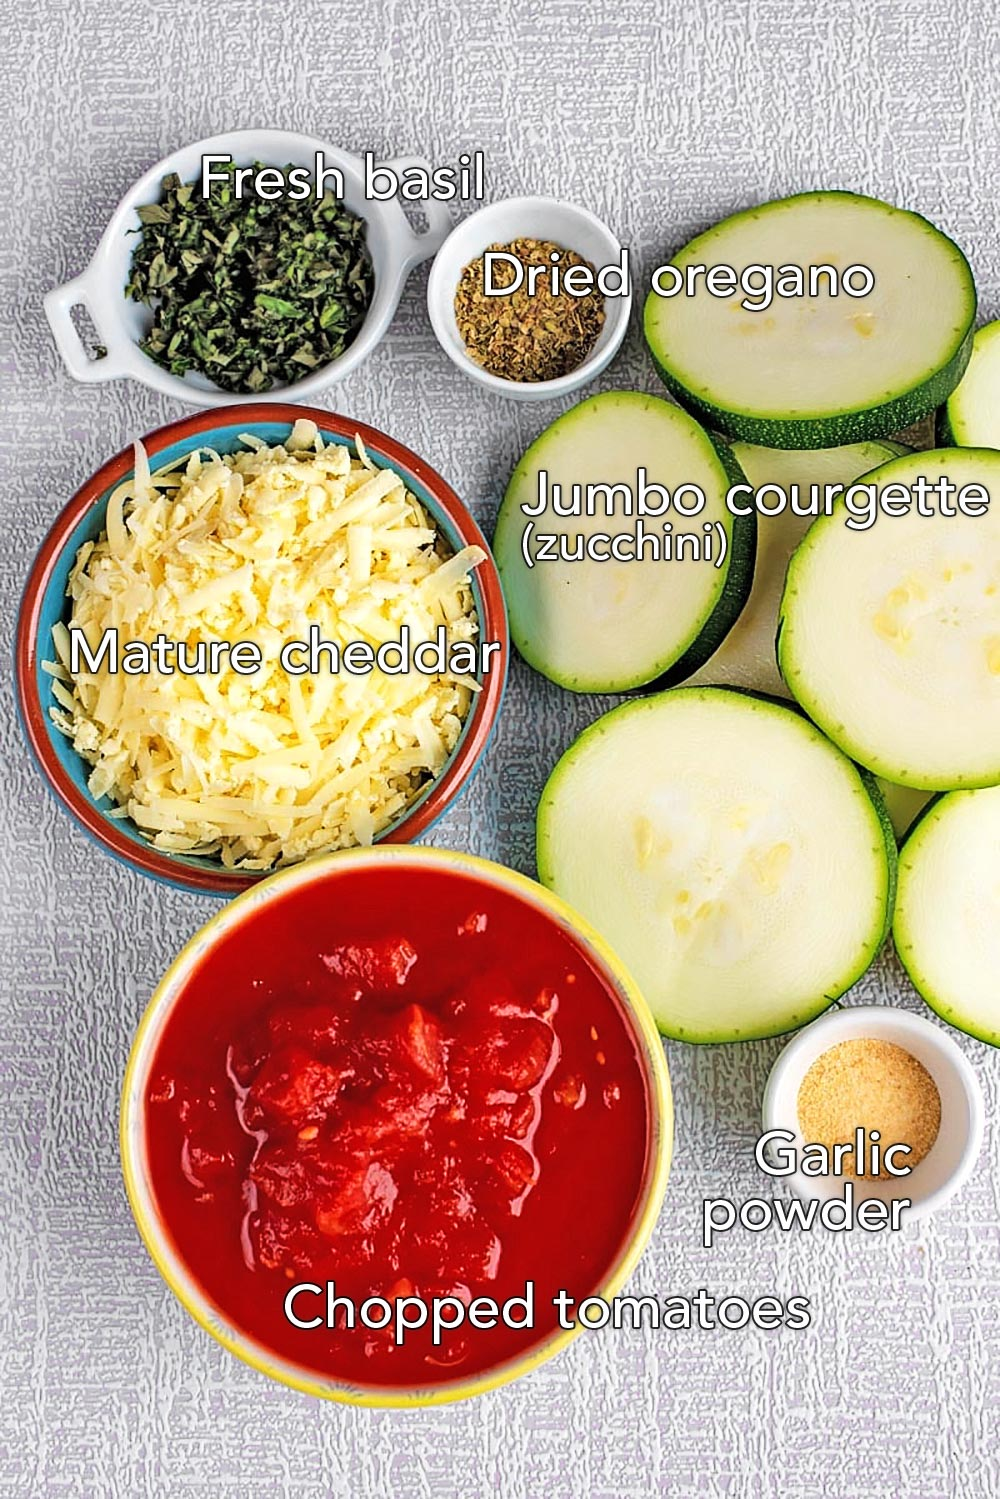 Sliced courgette (zucchini), a bowl of tomatoes, grated cheese and herbs on a textured surface